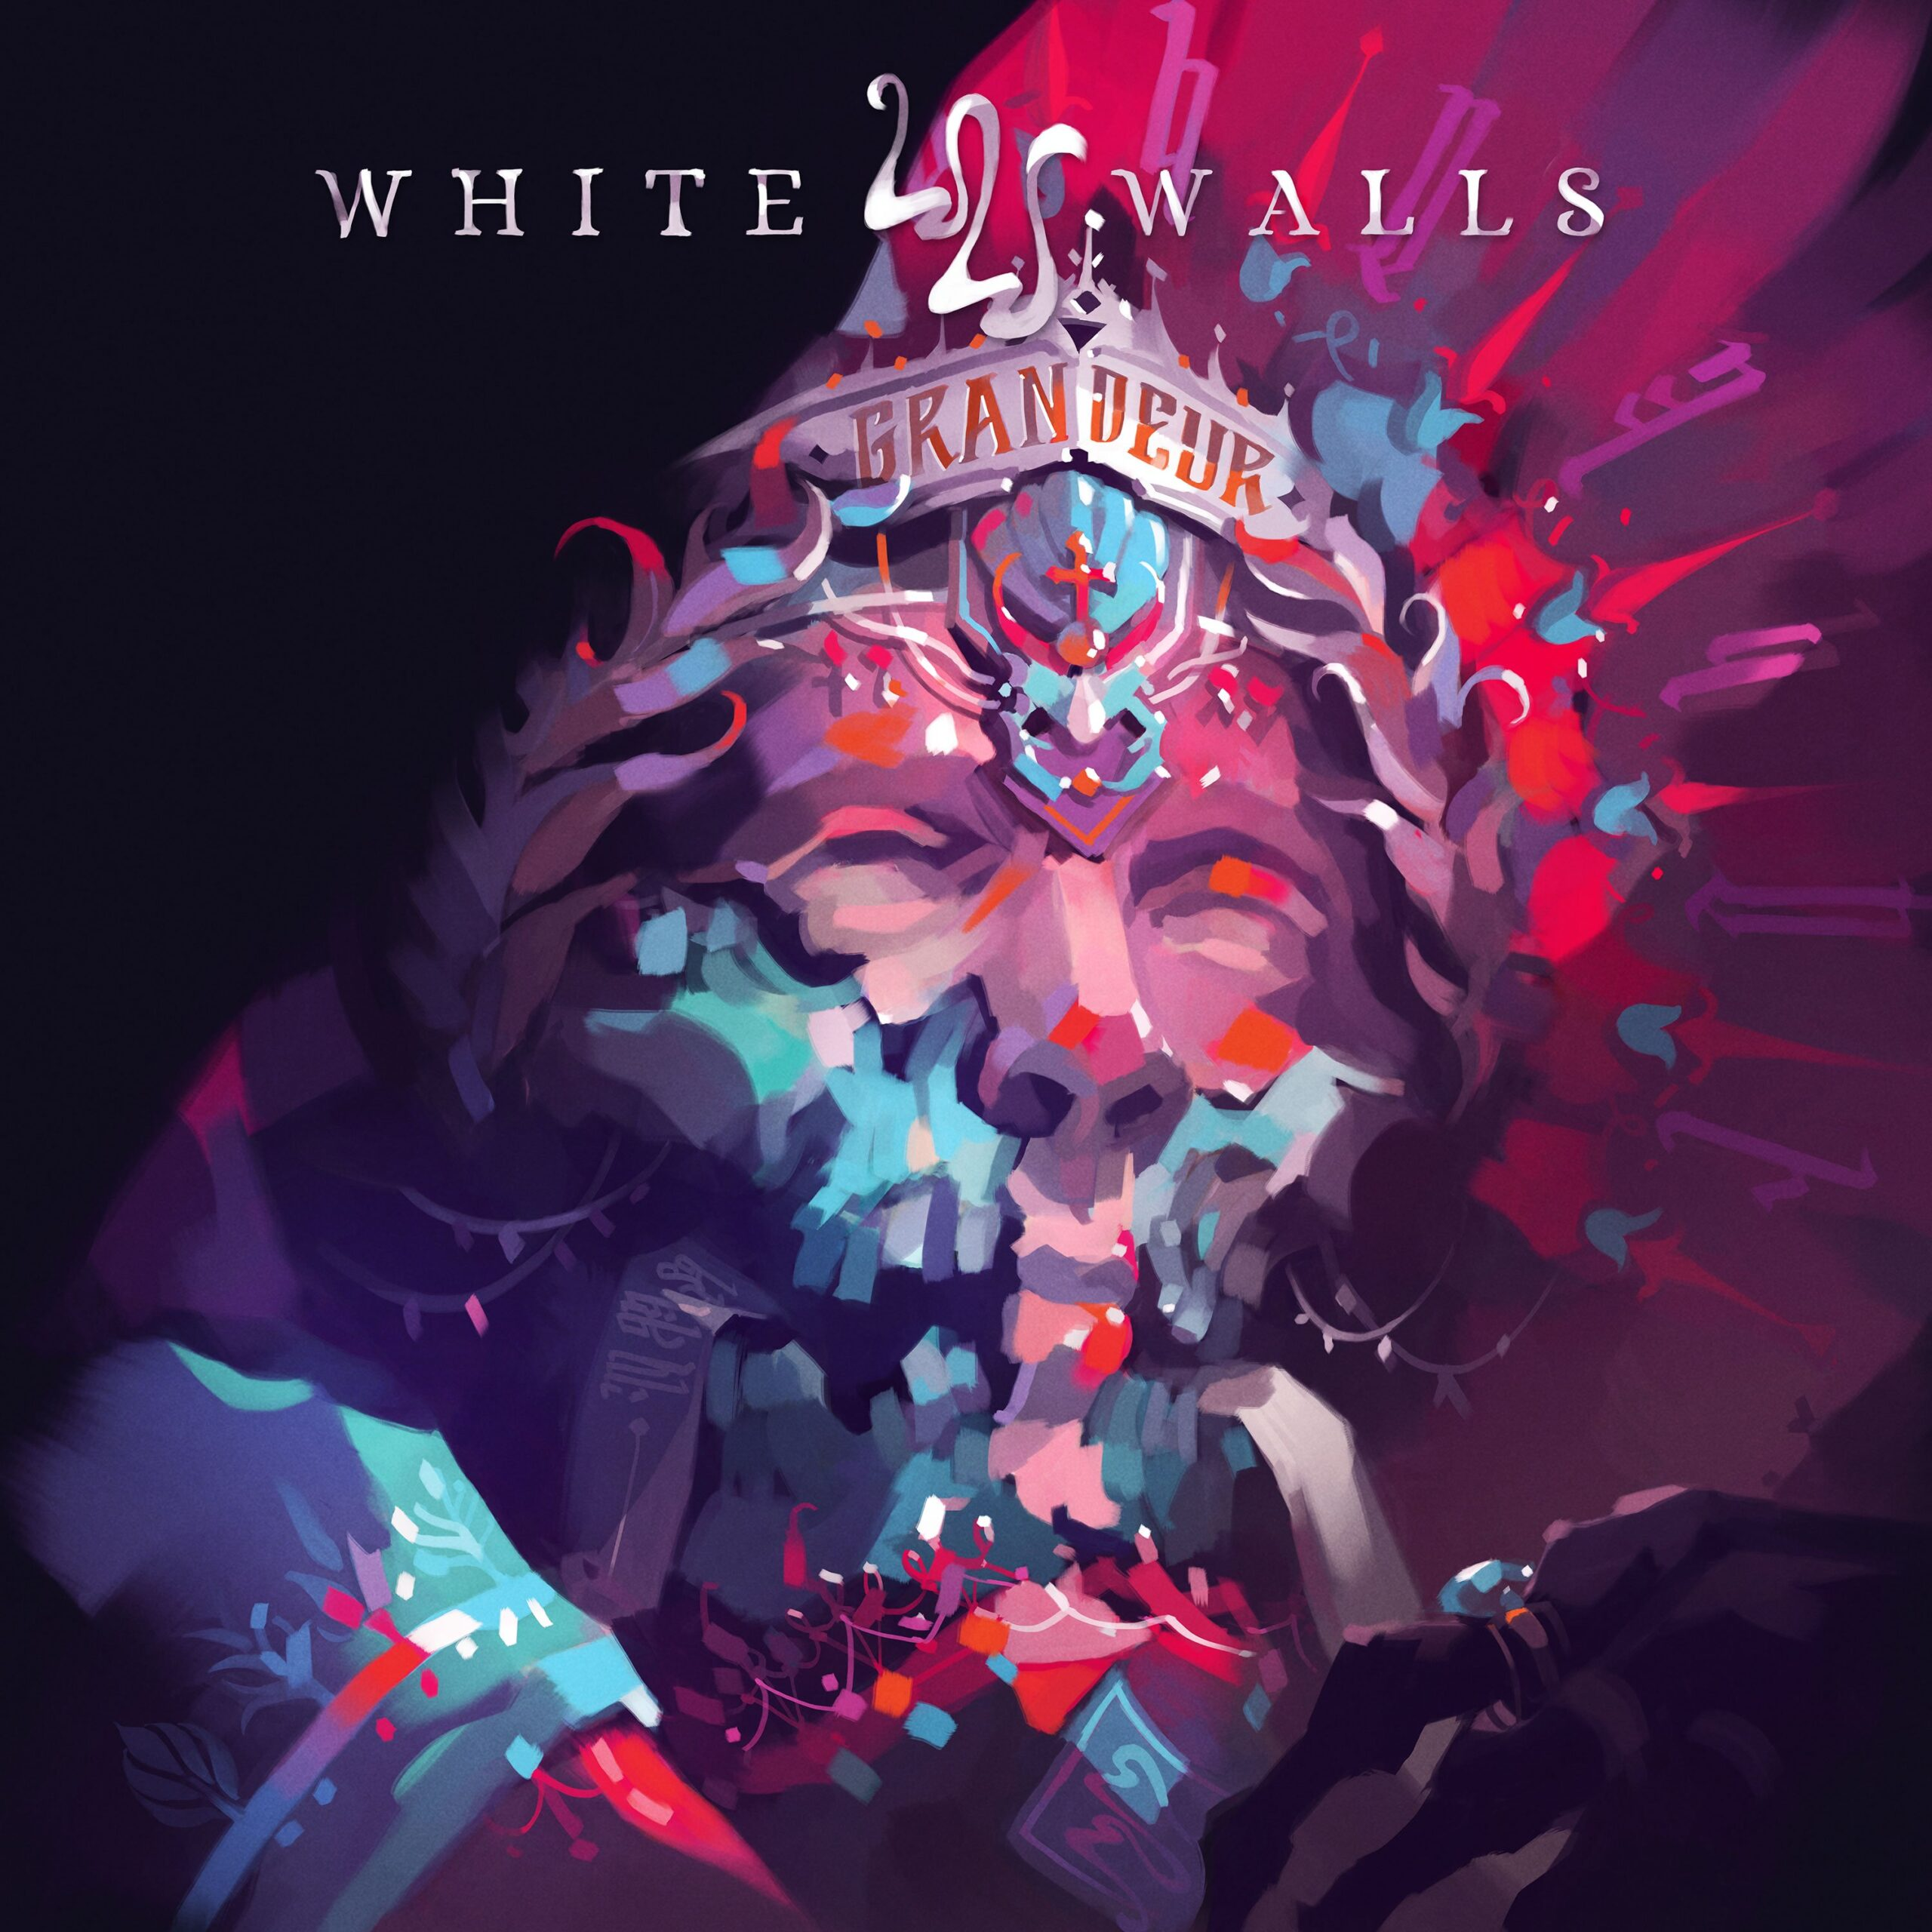 REVIEW: White Walls – Grandeur